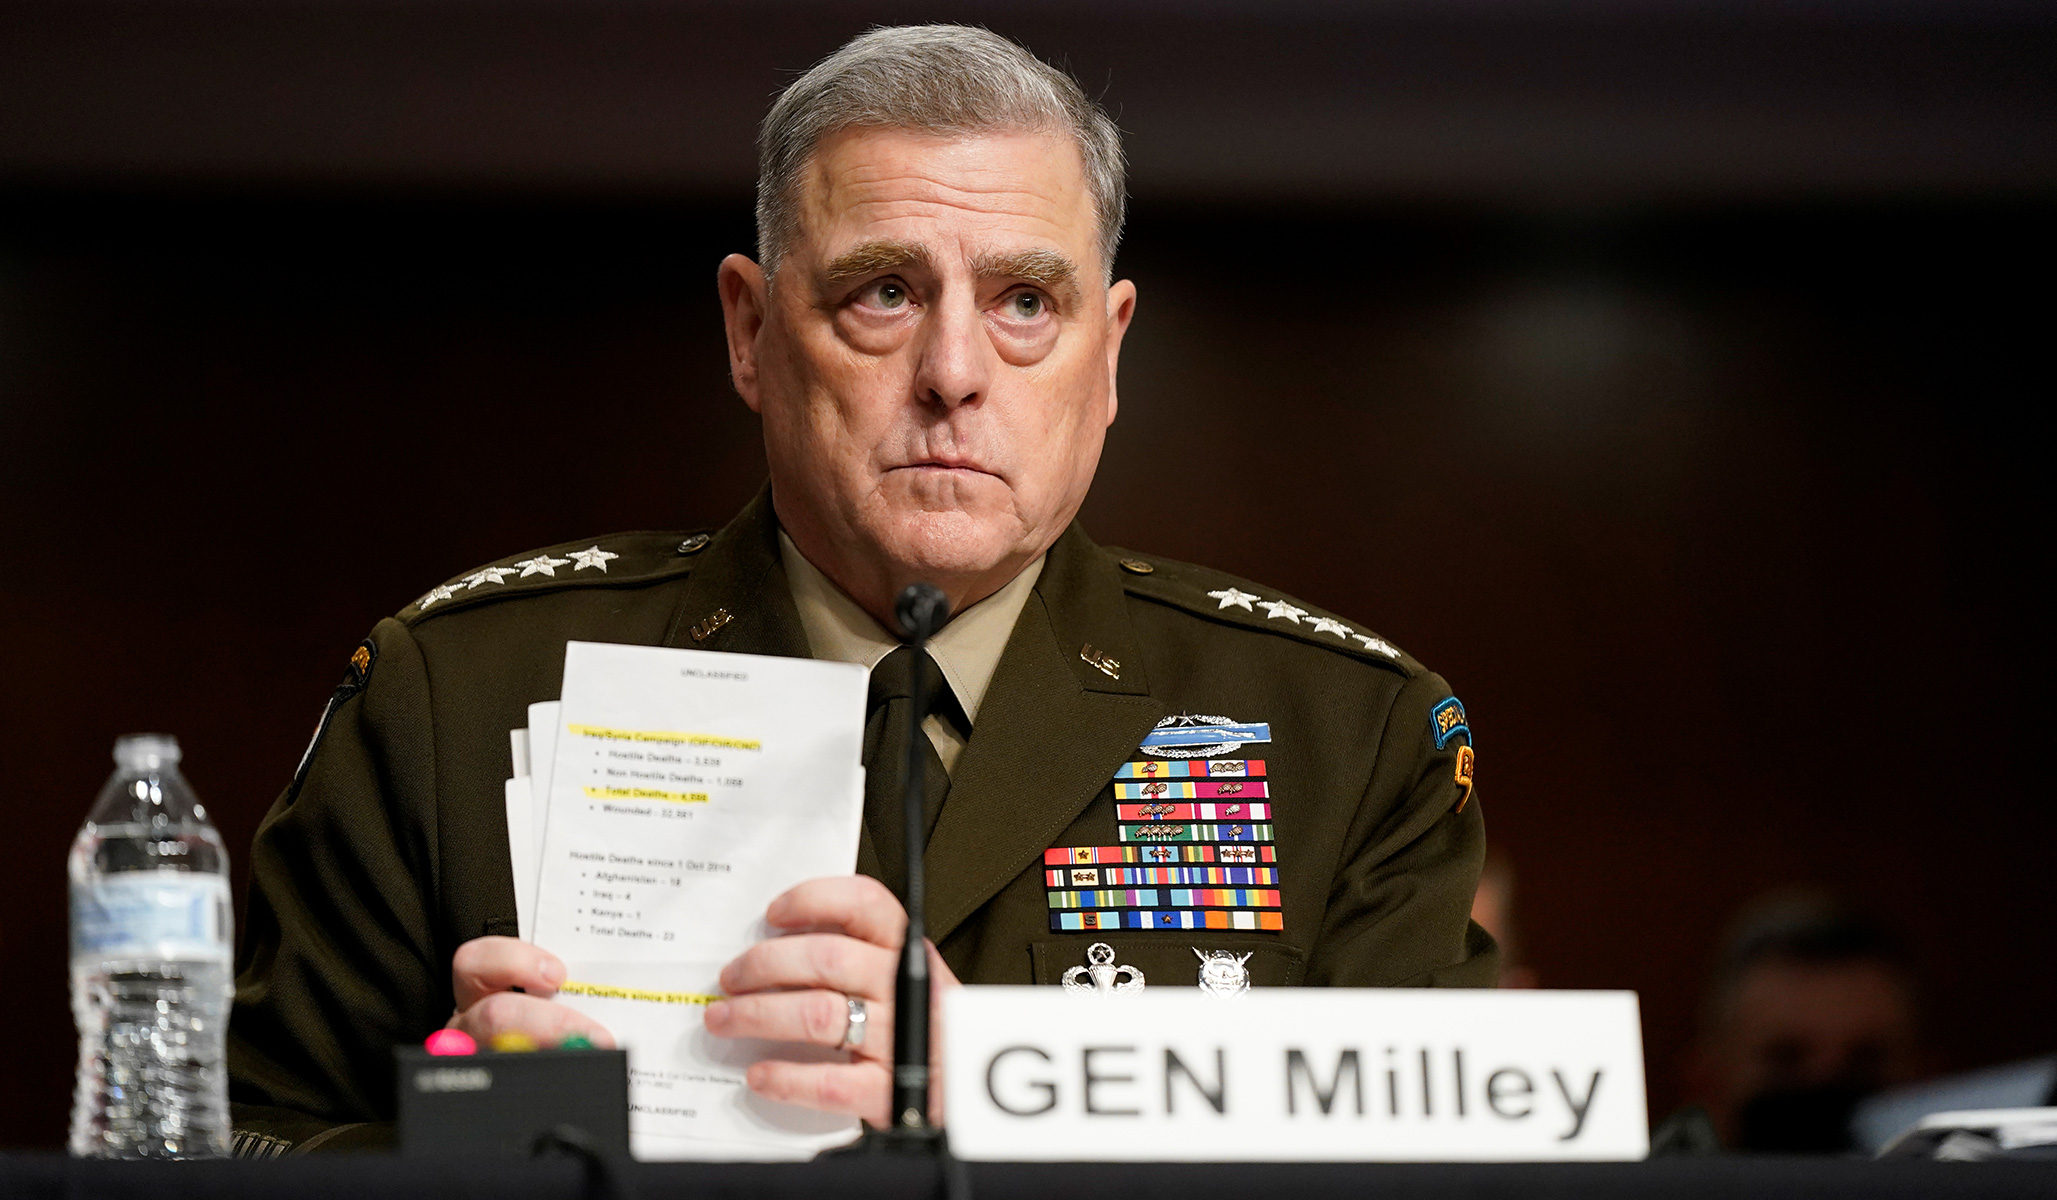 Milley Defends Call to Chinese Counterpart, Says He Was Not Trying to 'Usurp Authority or Insert Myself'